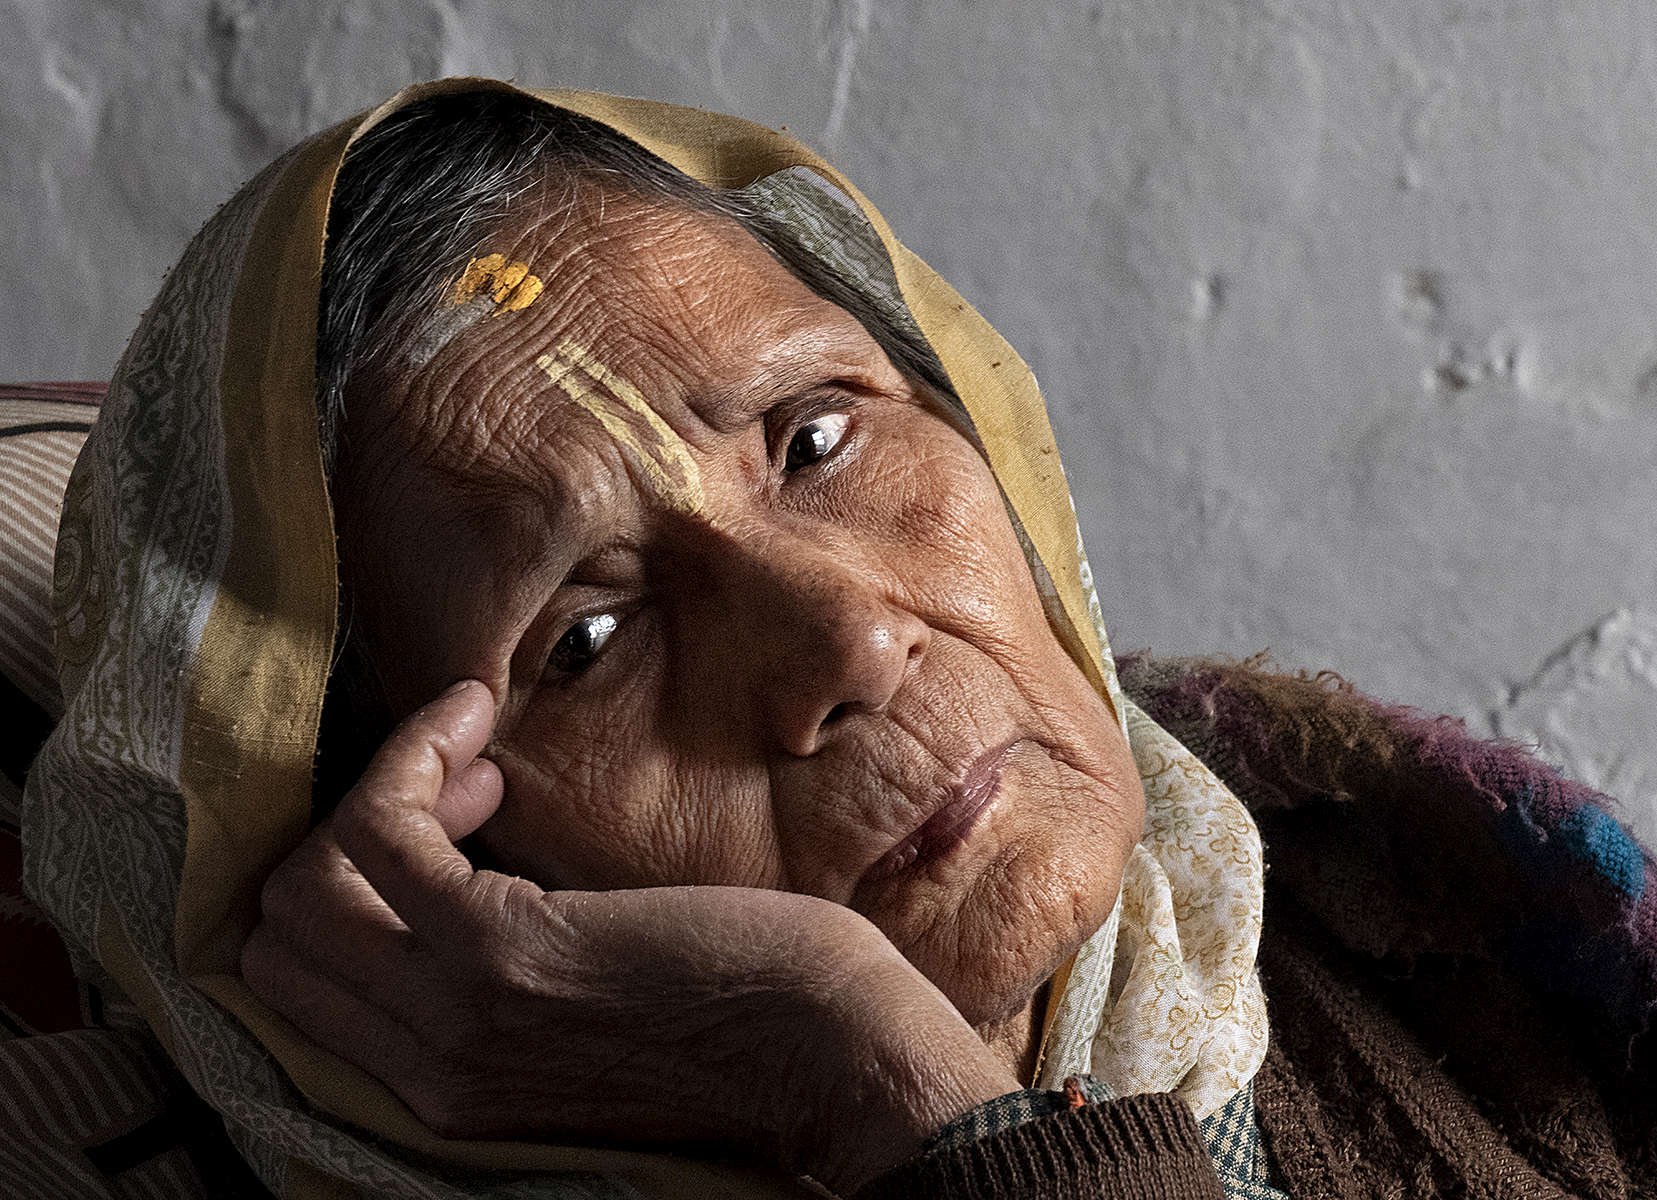 Meena Devi, 78, a widow, falls deep in thought at Rak Kuti ashram in Varanasi, India on January 07, 2019. Meena is originally from Nepal, and has lived in the ashram for the past 25 years. Before that, she lived in the same building as Sita Devi, 52, and her mother-in-law, Goma Devi, 96, who now also occupy this ashram. Meena is a child widow. {quote}Maybe I was cursed and I would have been forbidden to attend any functions because my husband died at a young age,{quote} she says. So with the help of relatives she moved here to live among other widows. She didn't want to marry again after her husband's death.